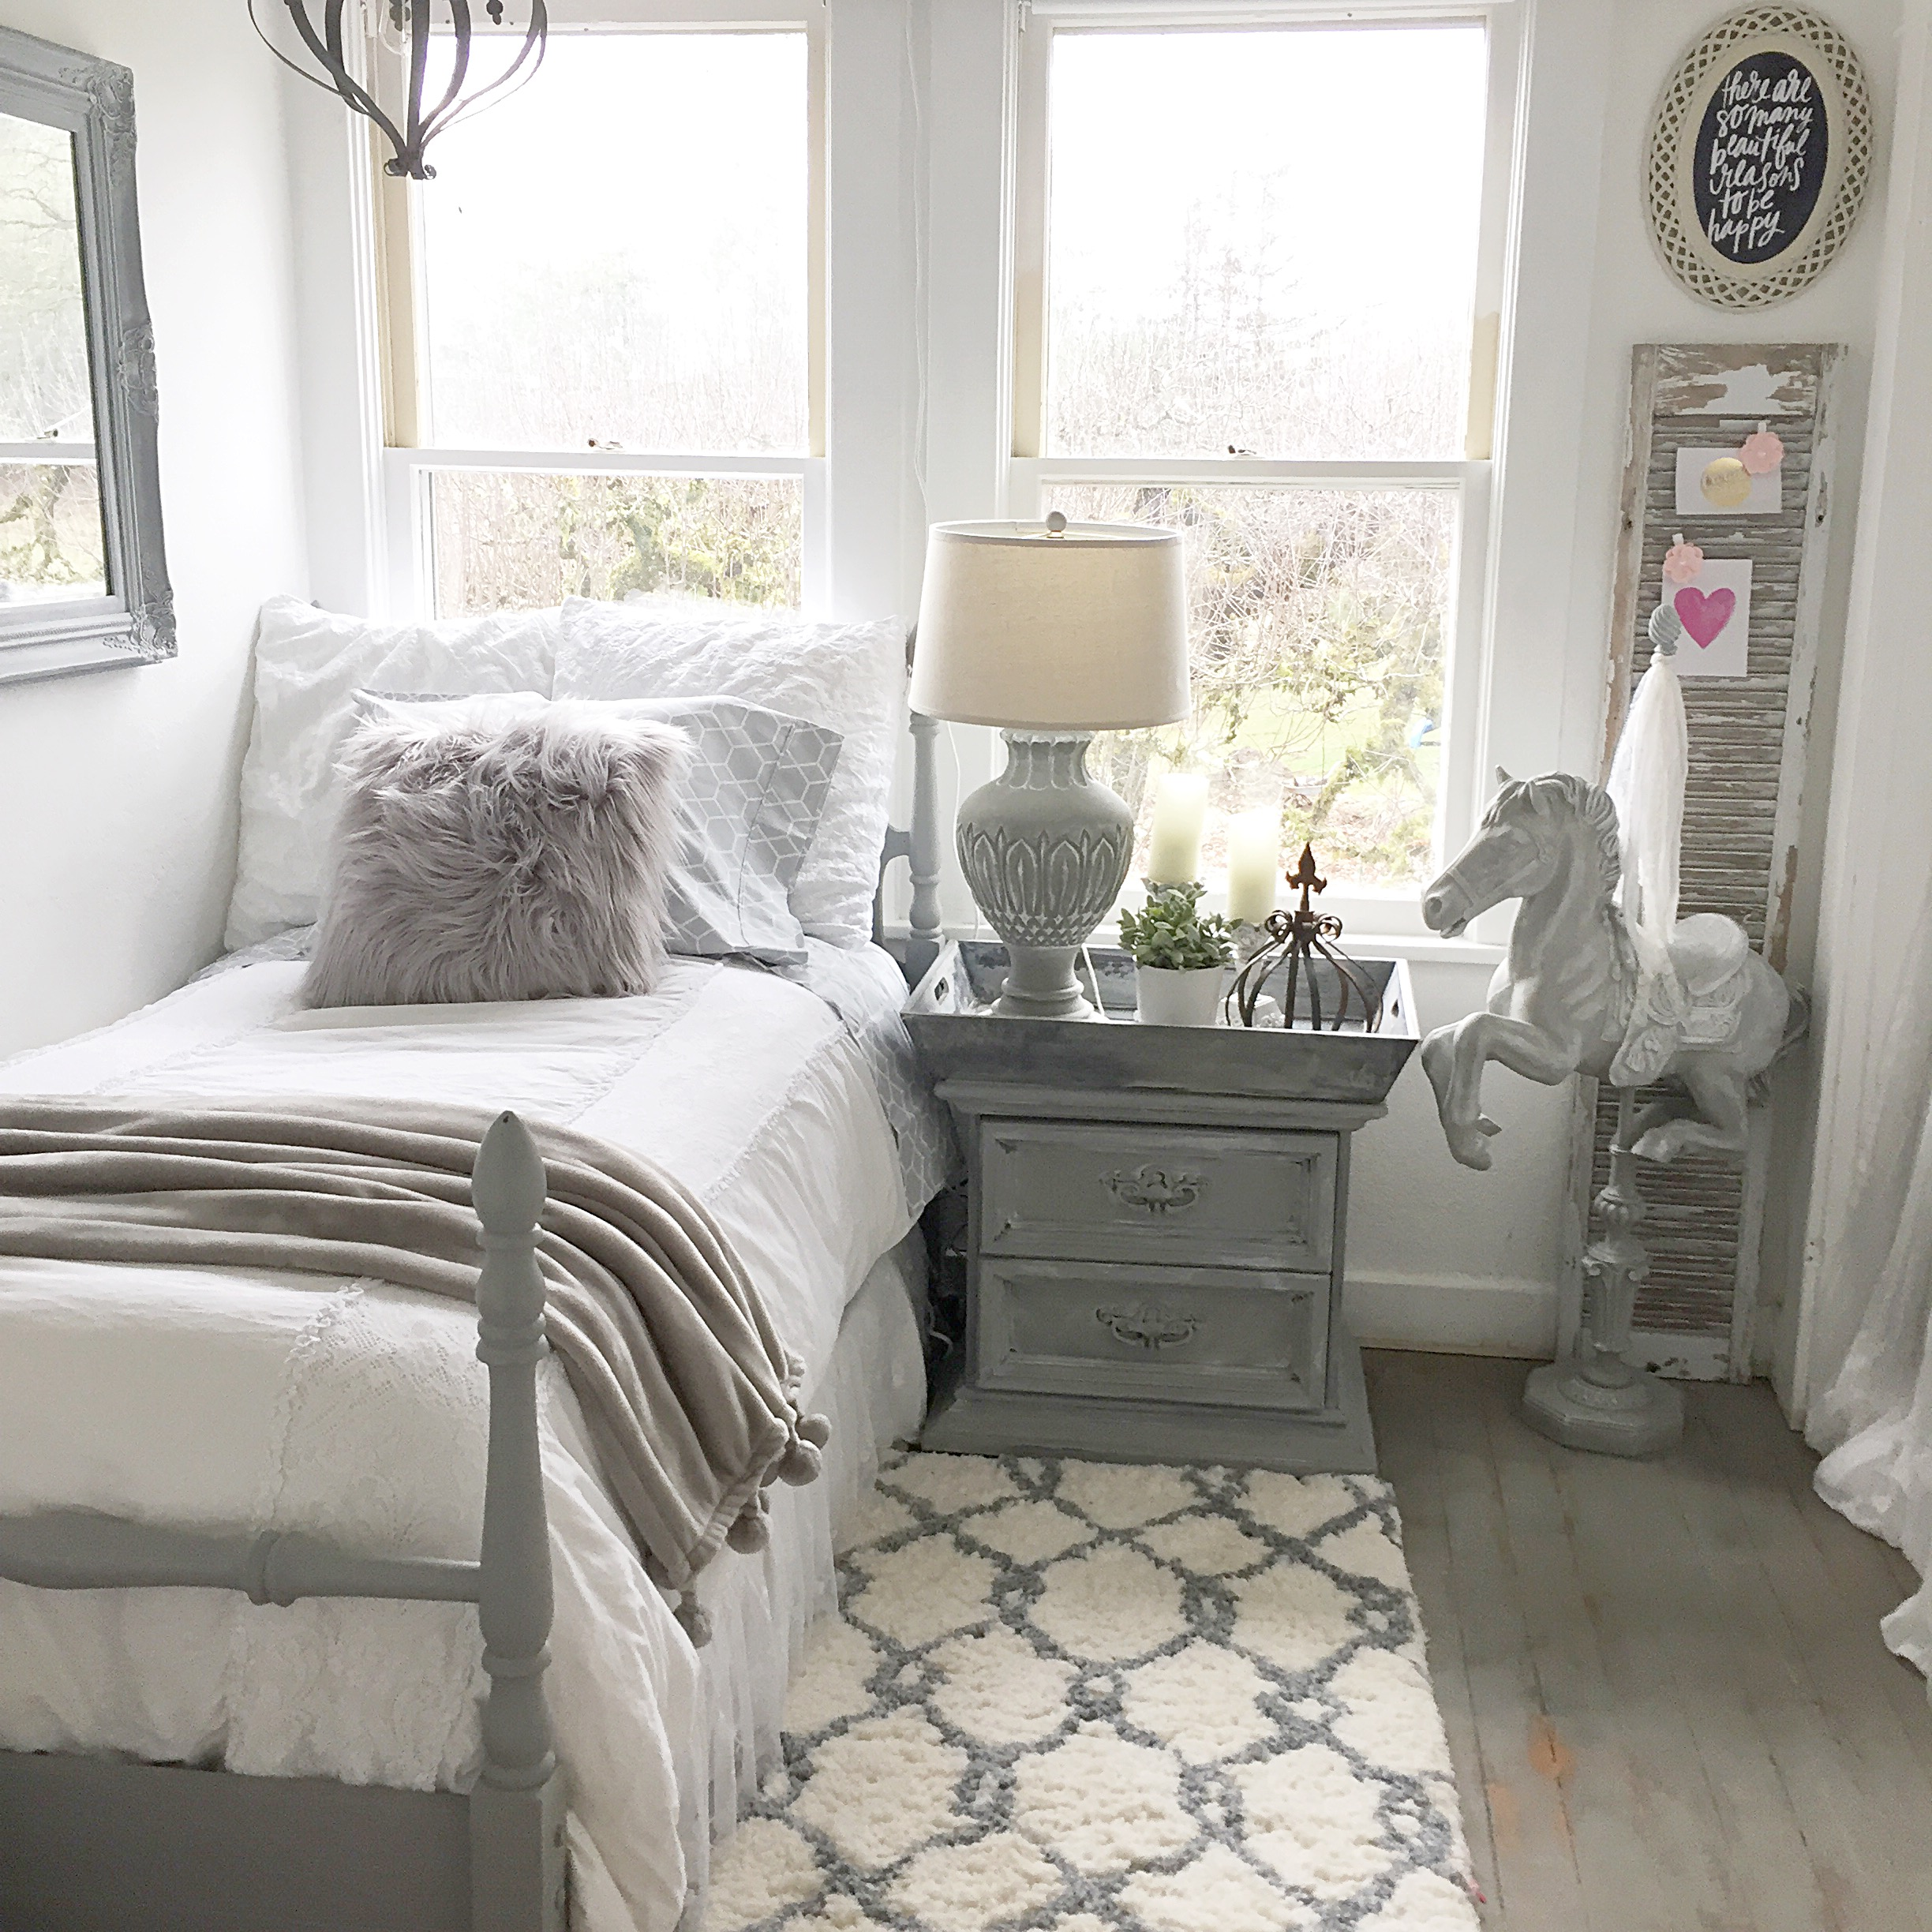 Teen Girl's Bedroom Style- Easy Chalk Paint Recipe